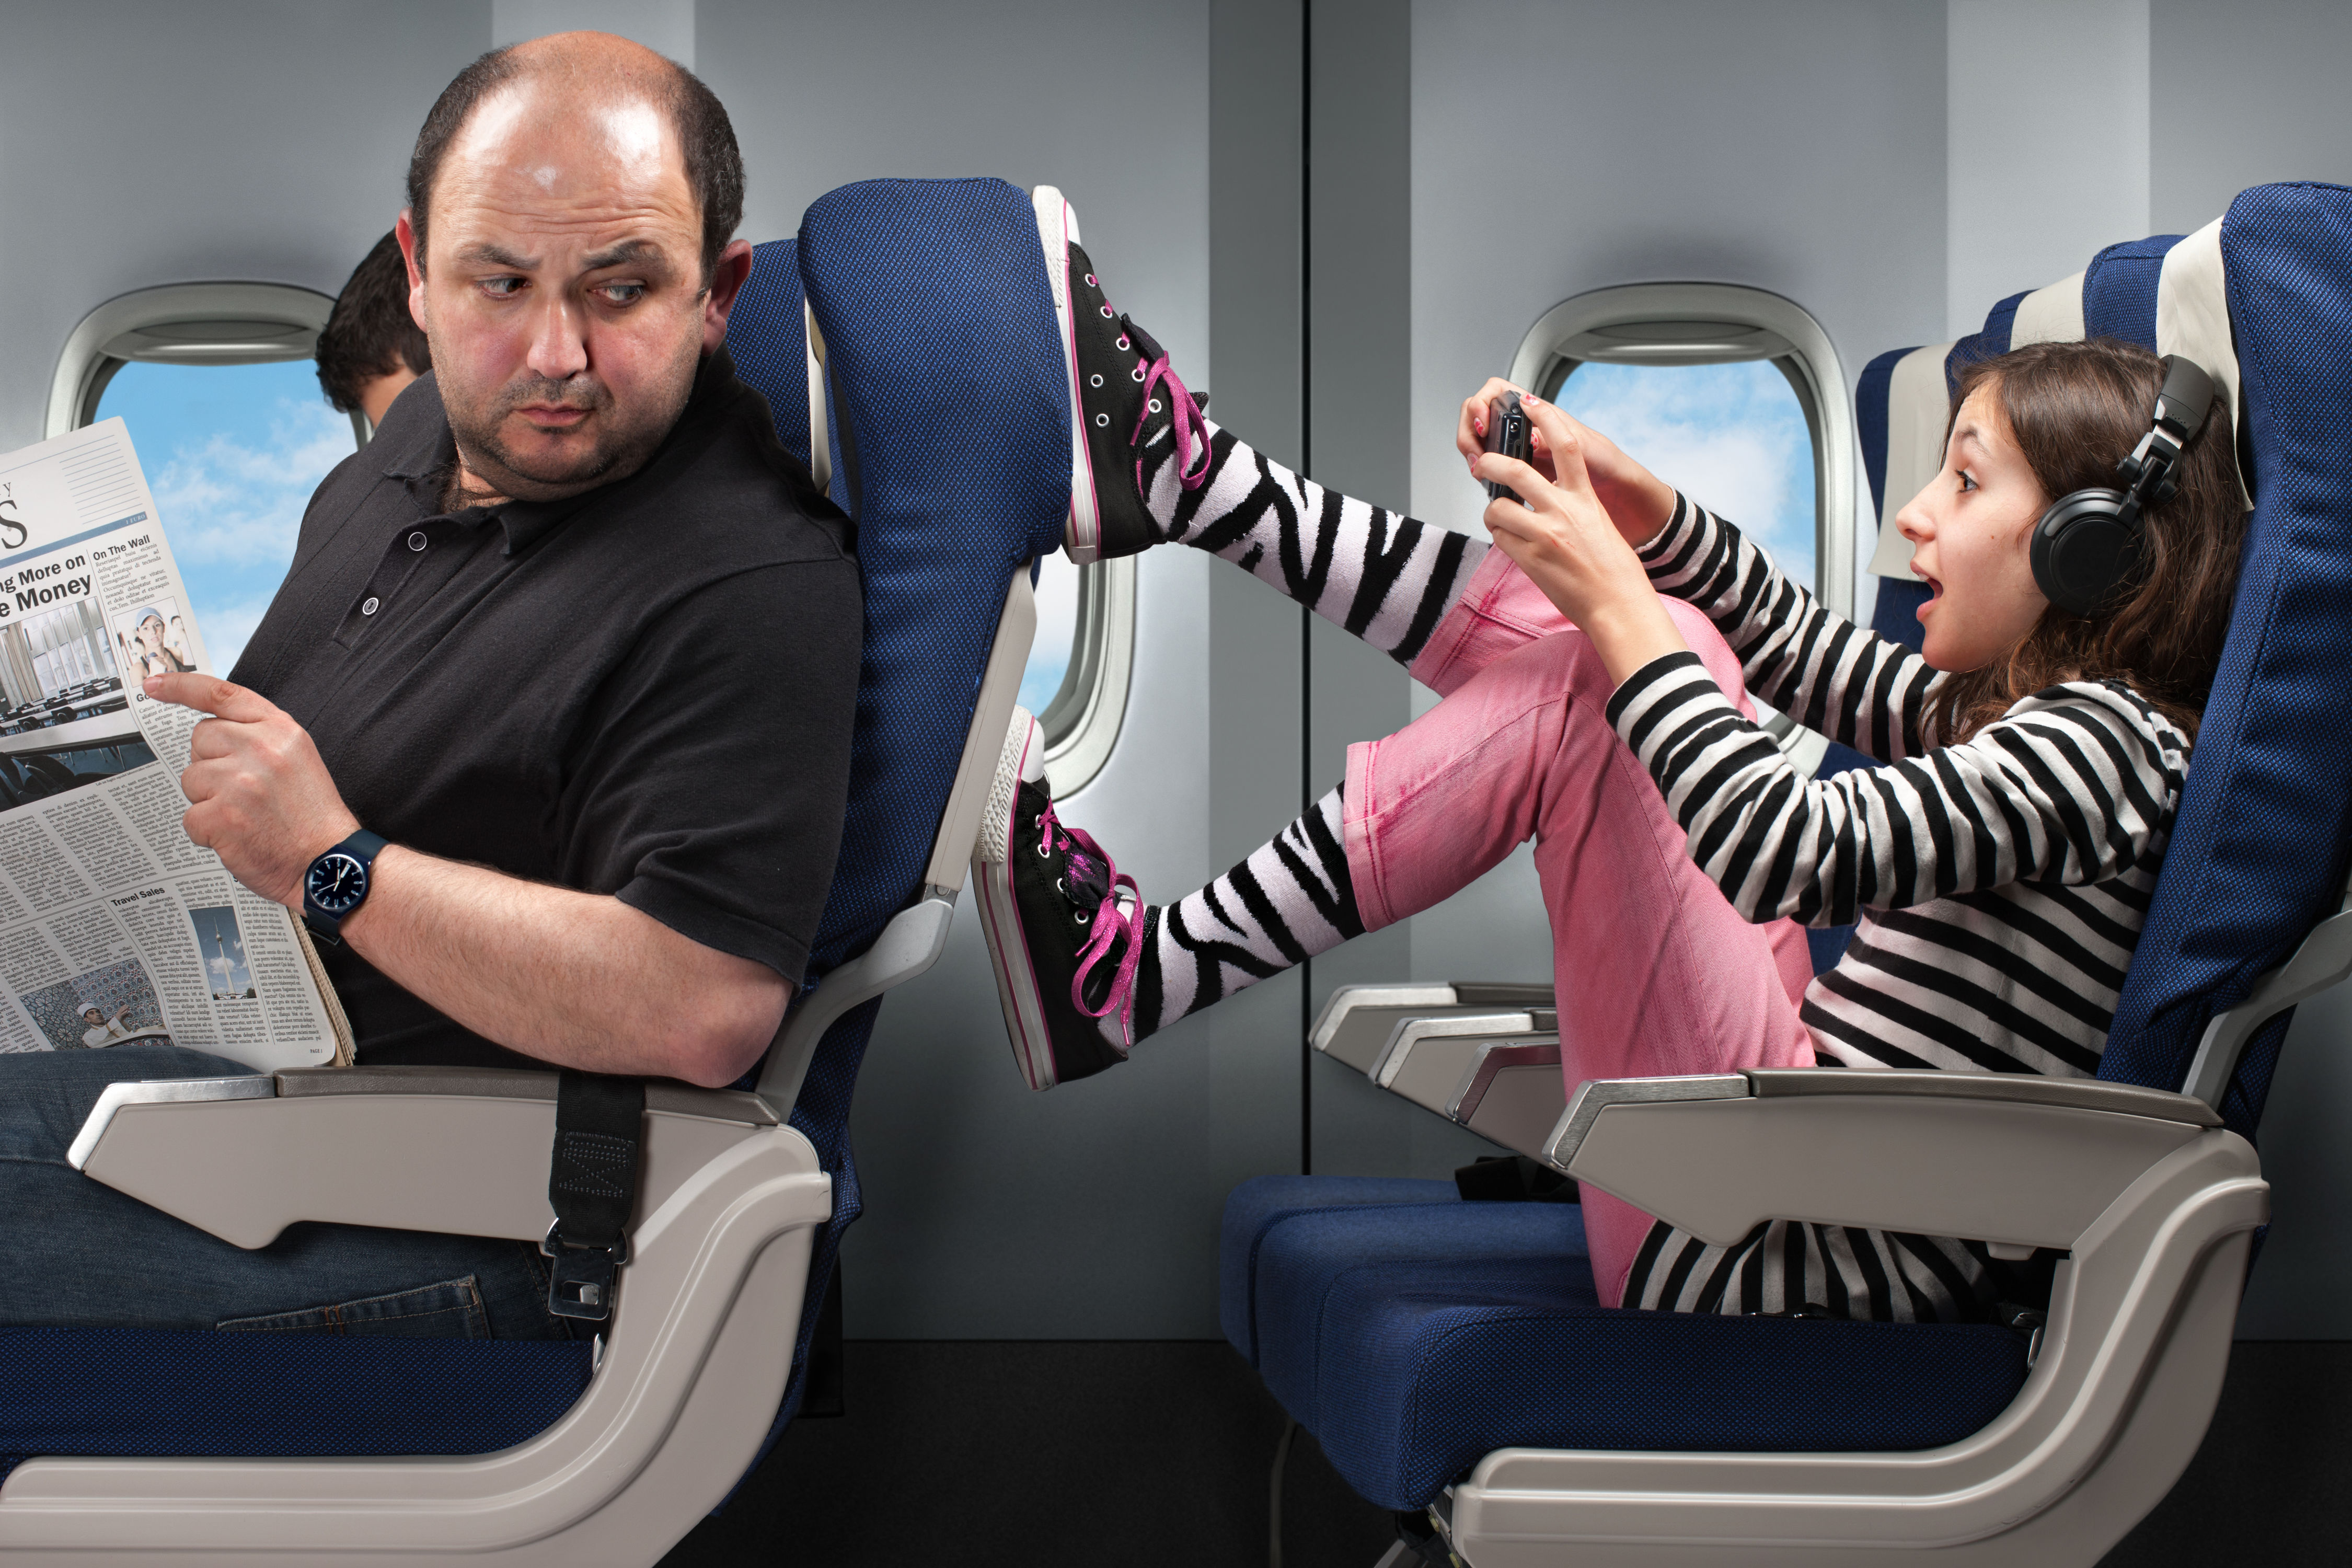 The 5 Rudest Things You Can Do on a Plane